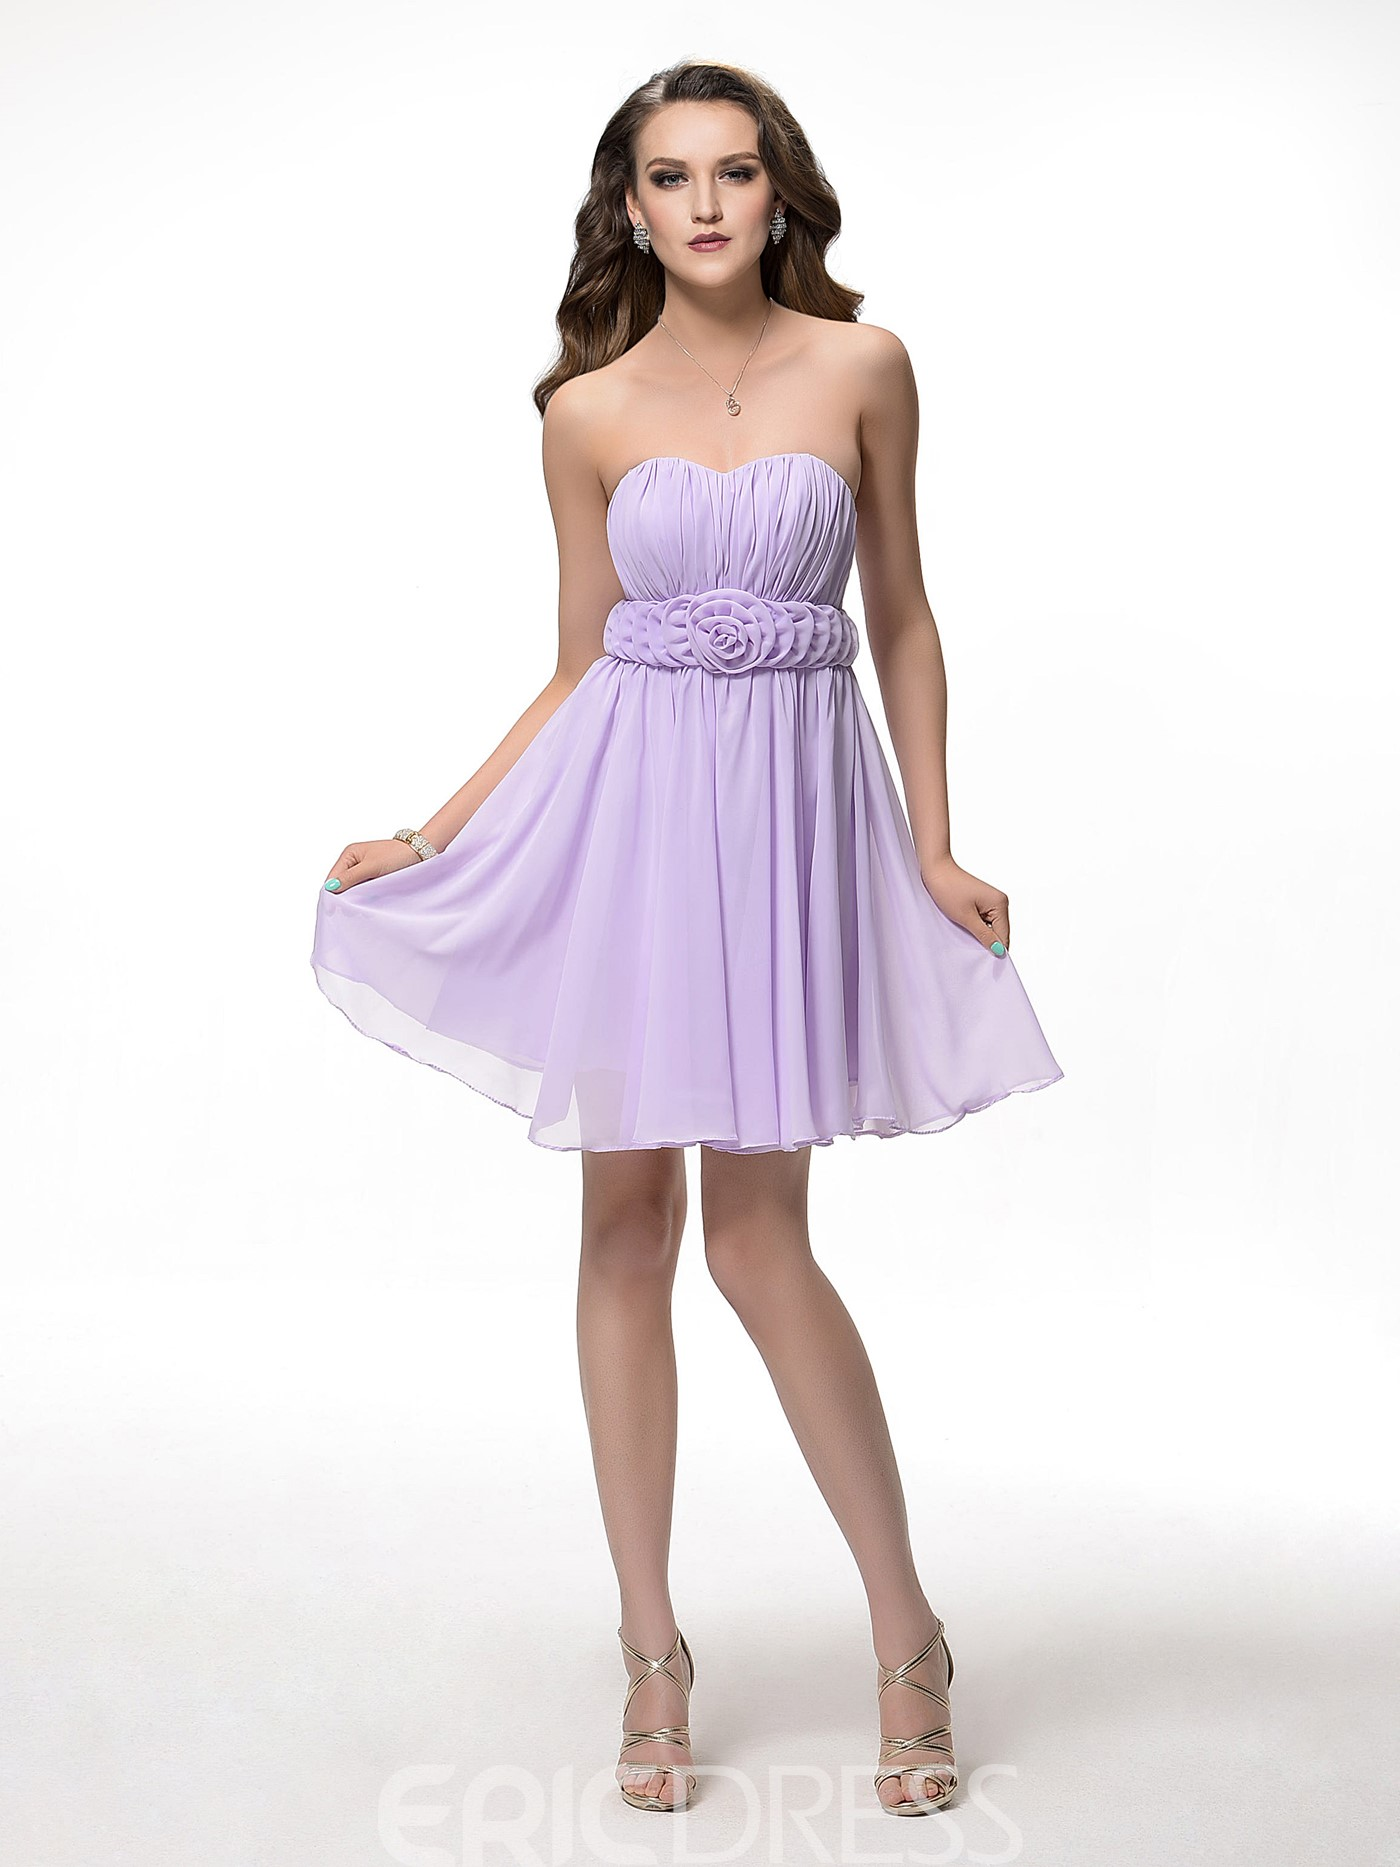 Pretty A-Line Sweetheart Lace-up Flowers Short-Length Homecoming Dress